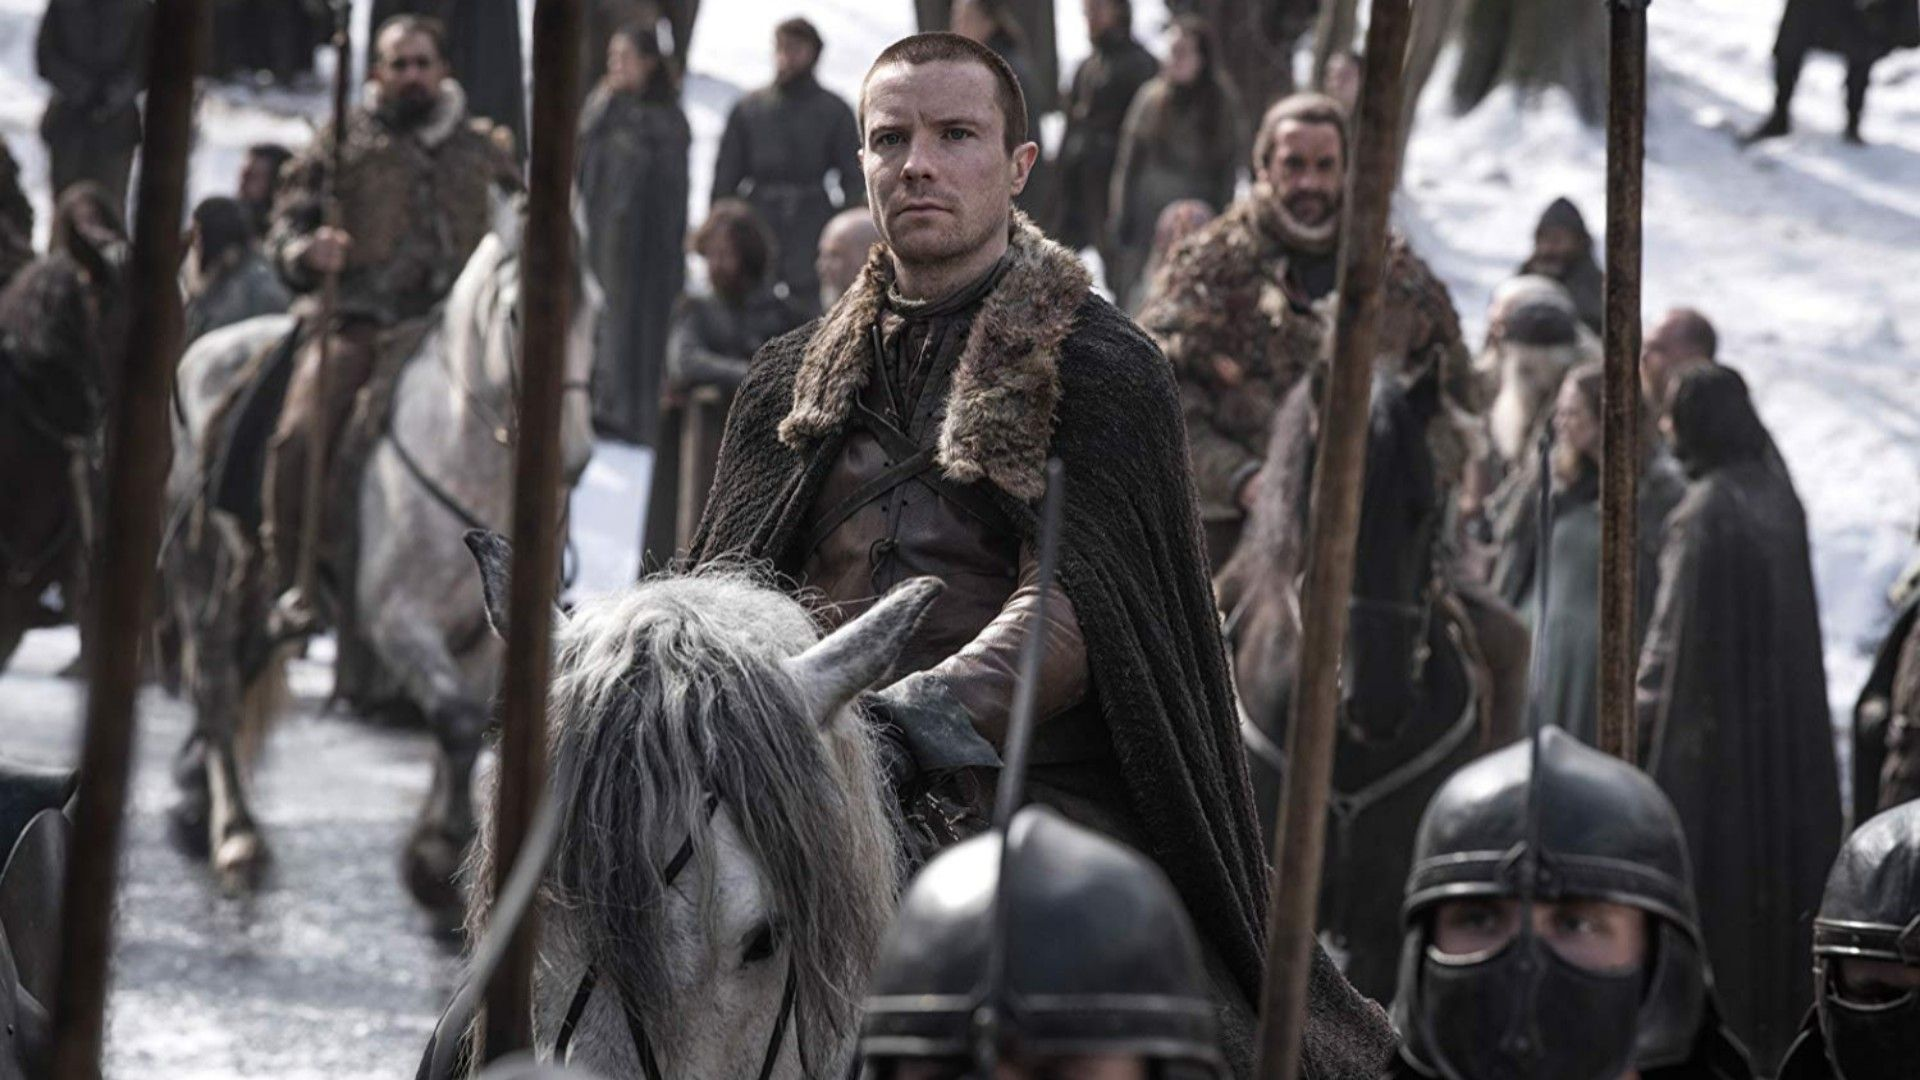 In Season Eight, Episode Four, Daenerys names Gendry Lord of Storm's End, giving him much-craved legitimacy.